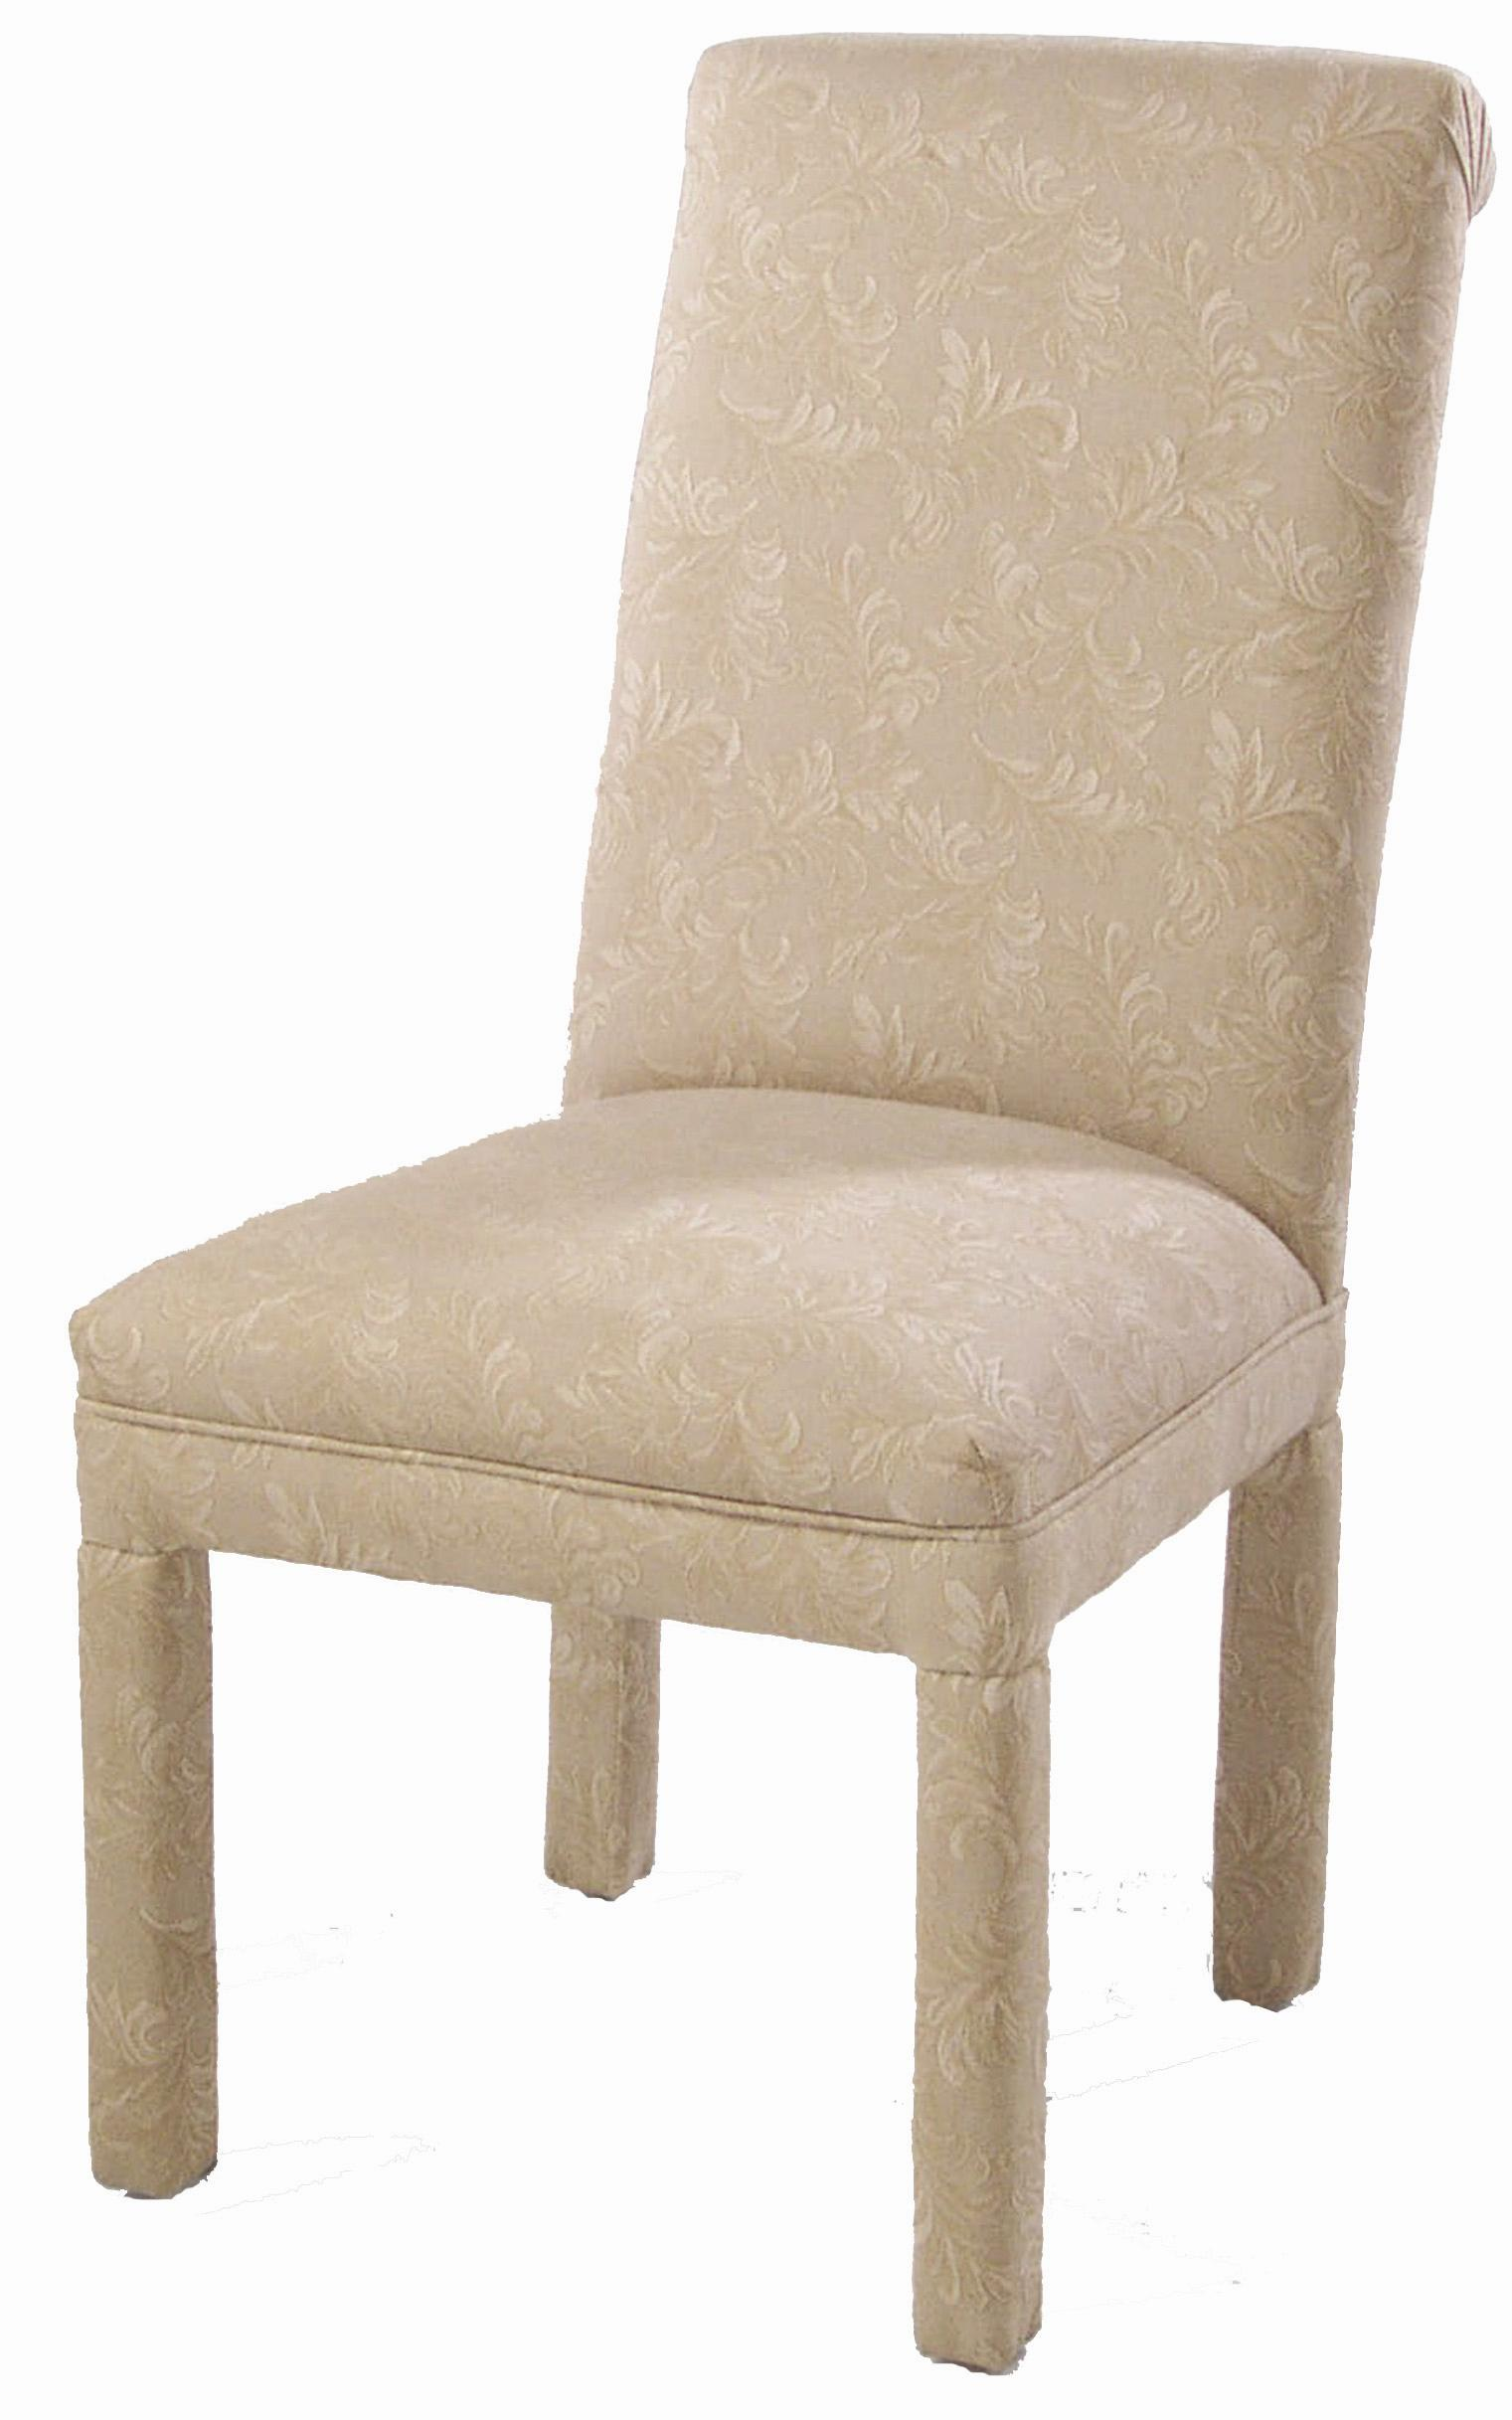 Upholstered Dining Chair by CMI